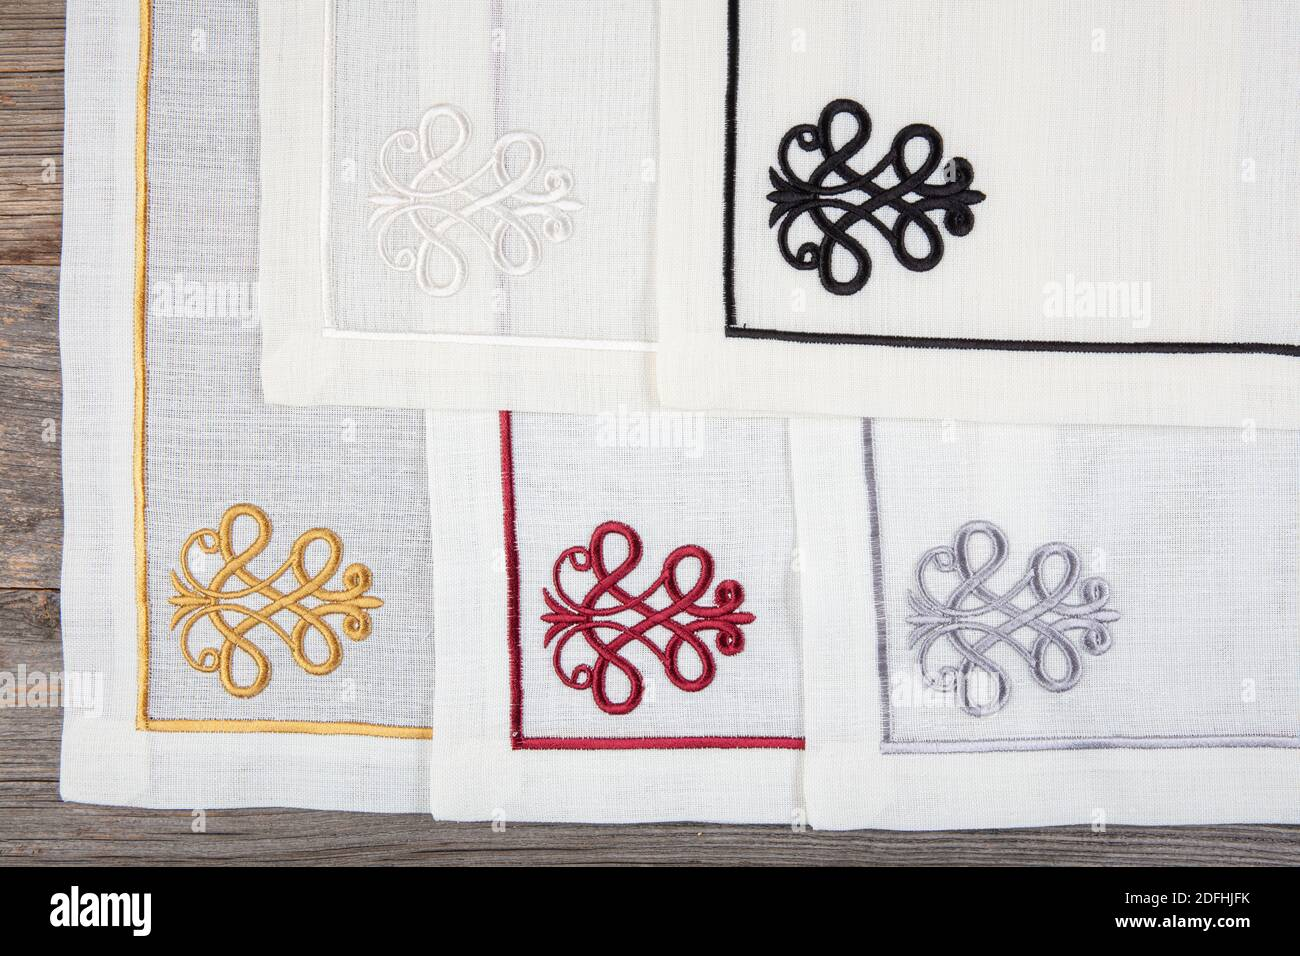 Folded Linen Napkins On Wooden Table Luxury Napkins With Embroidery On The Hem Stock Photo Alamy